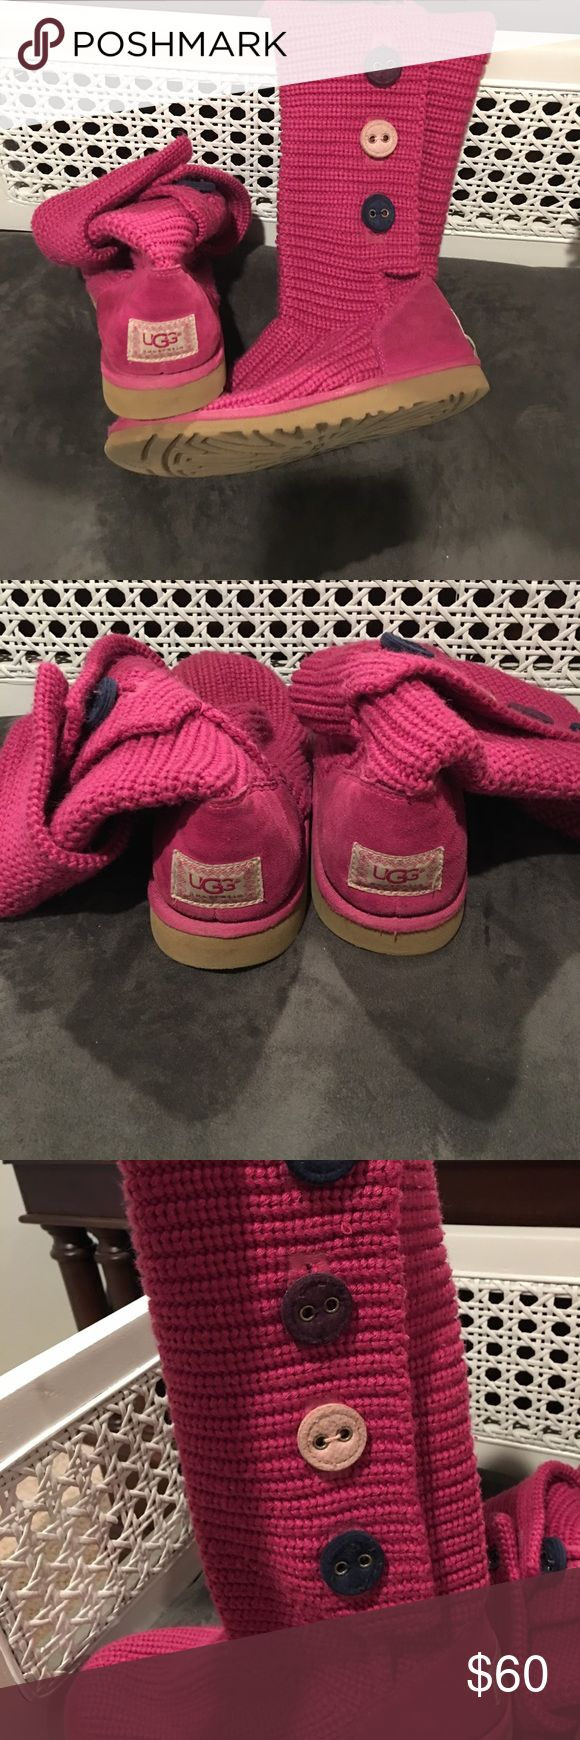 Hot Pink UGG tall/fold down boots with buttons These UGG boots are very original!  We bought them while in Miami on vacation.  They look great worn tall and folded down.  The boot size is a ladies 6.  But my daughter wore a 7 when we purchased them.  The bizarre thing is that she now wears a 9 in ladies shoes - and these UGGs still fit her (but very snug) ?  Considering she was a size 7 when purchased.....these boots will fit a ladies shoe size range from 7 - 8.5.  Excellent condition.  Come…